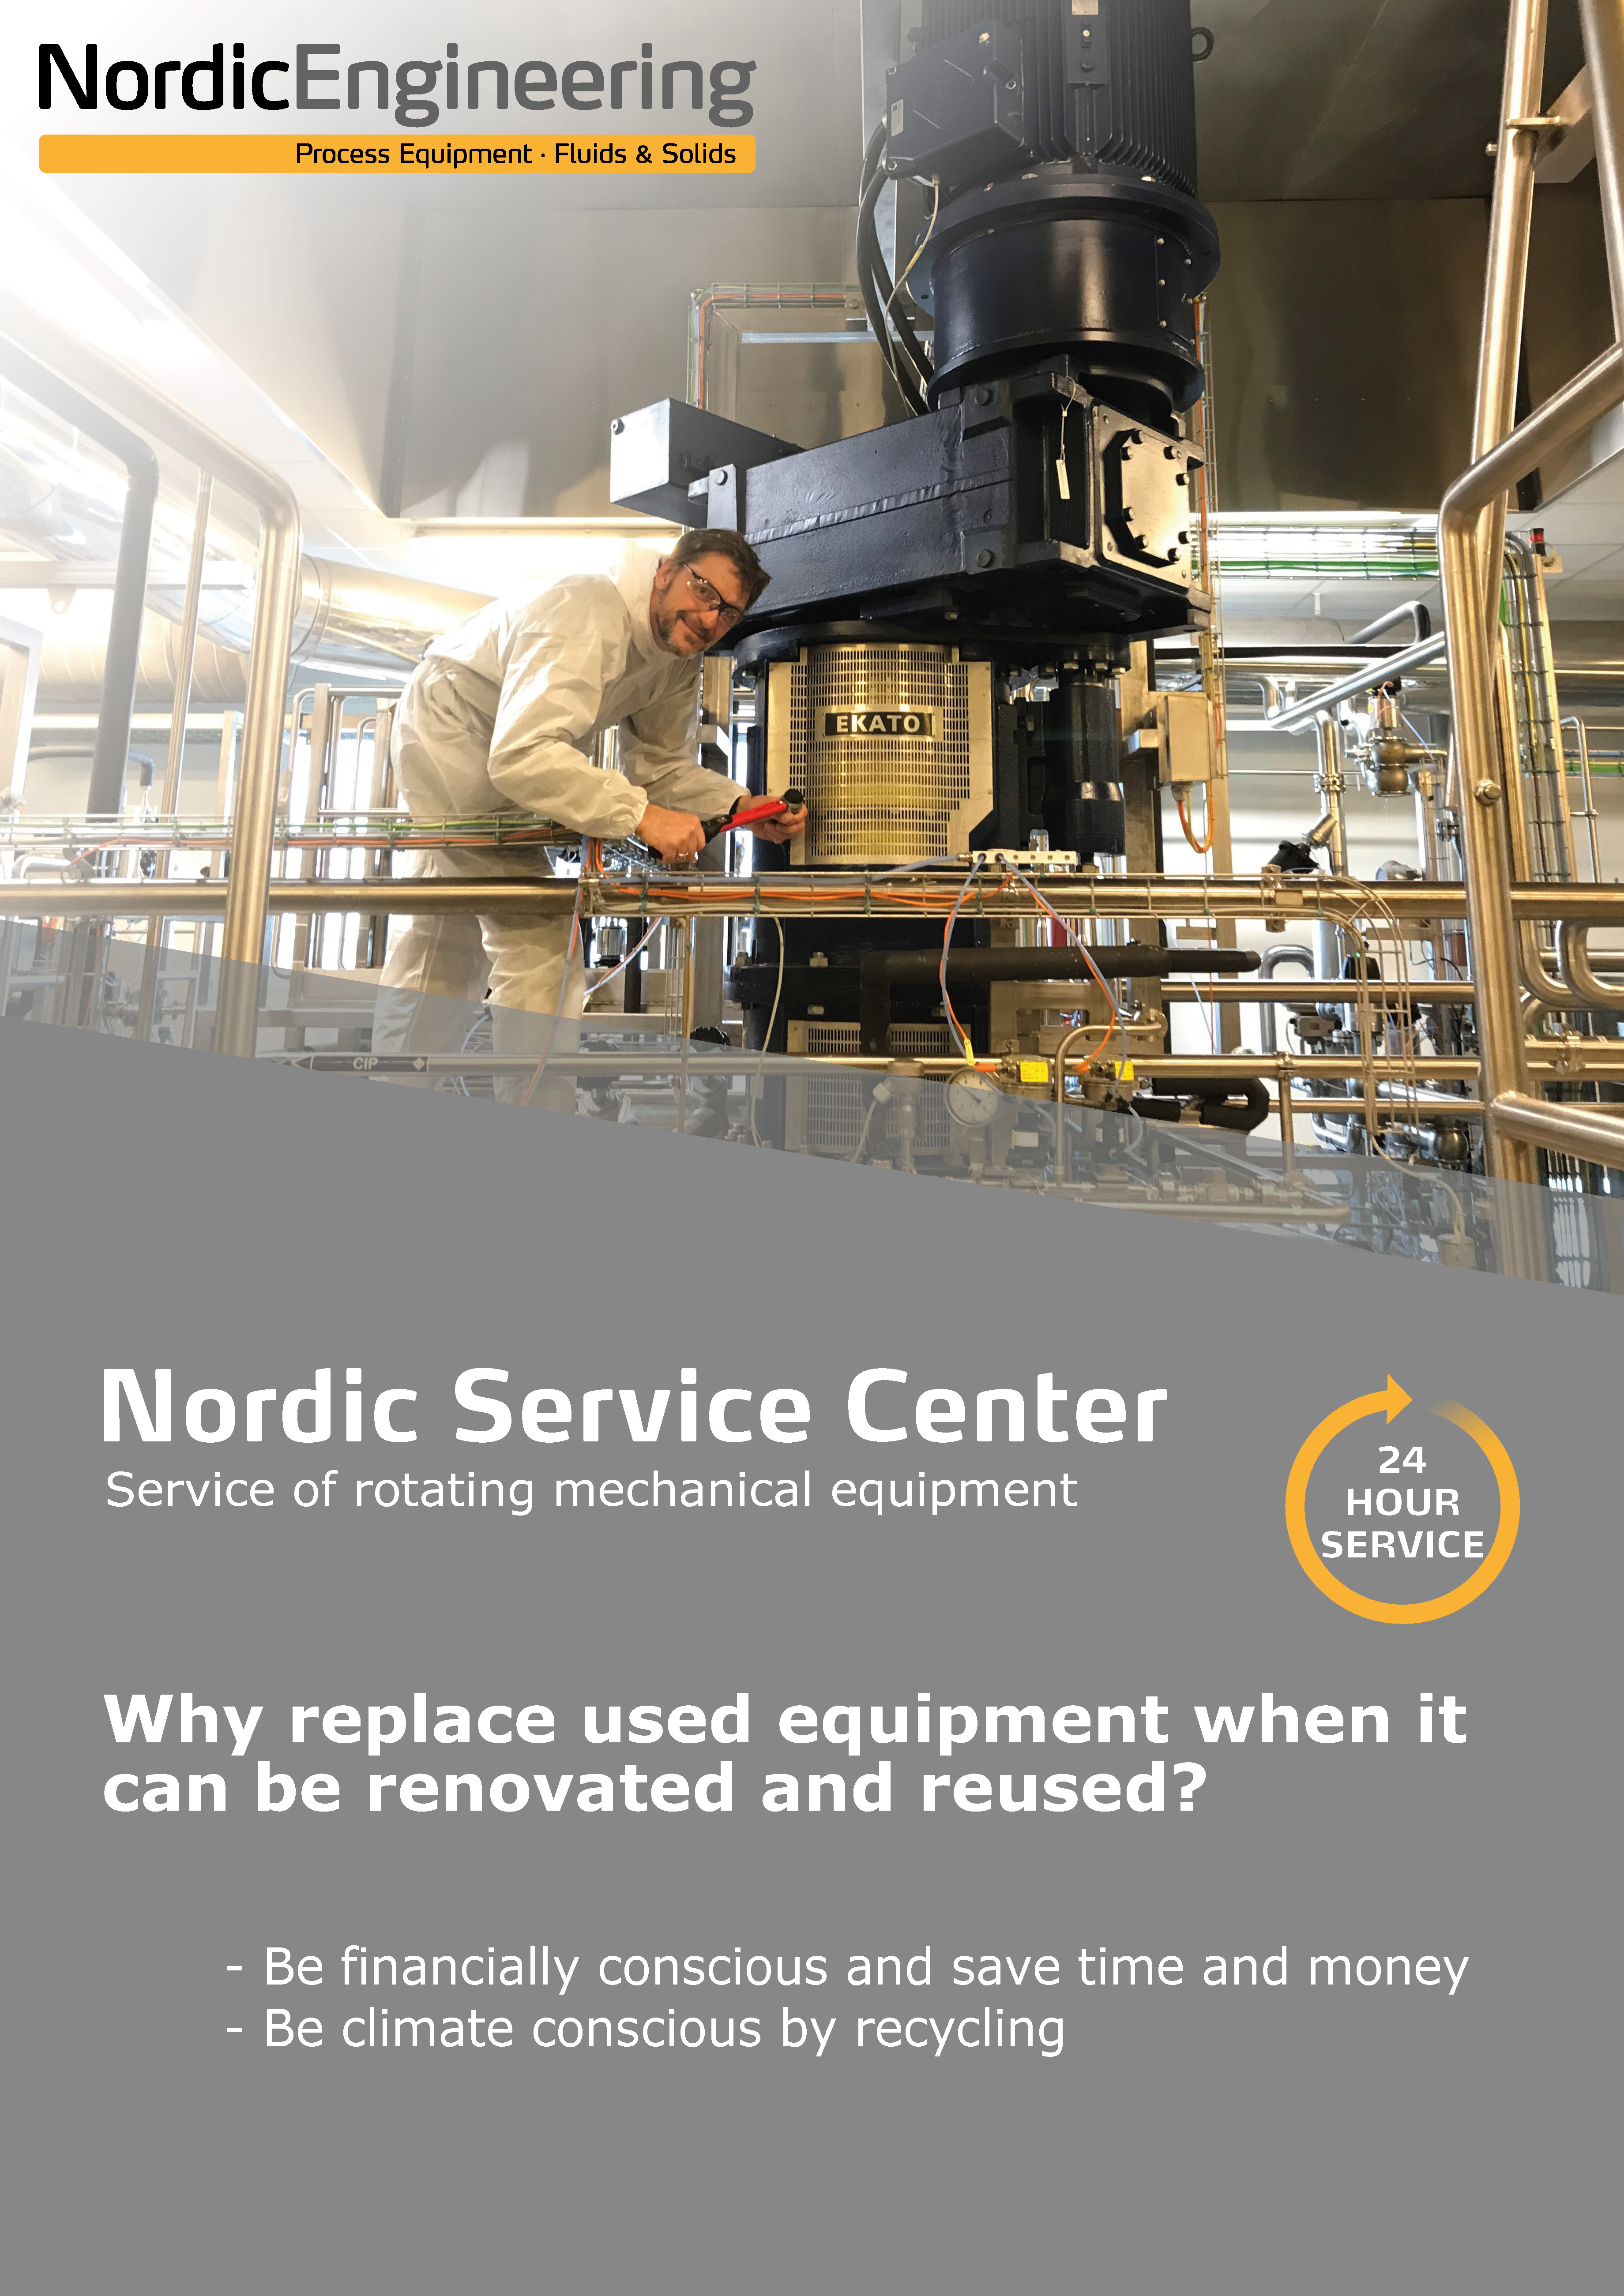 Download our Nordic Service Brochure